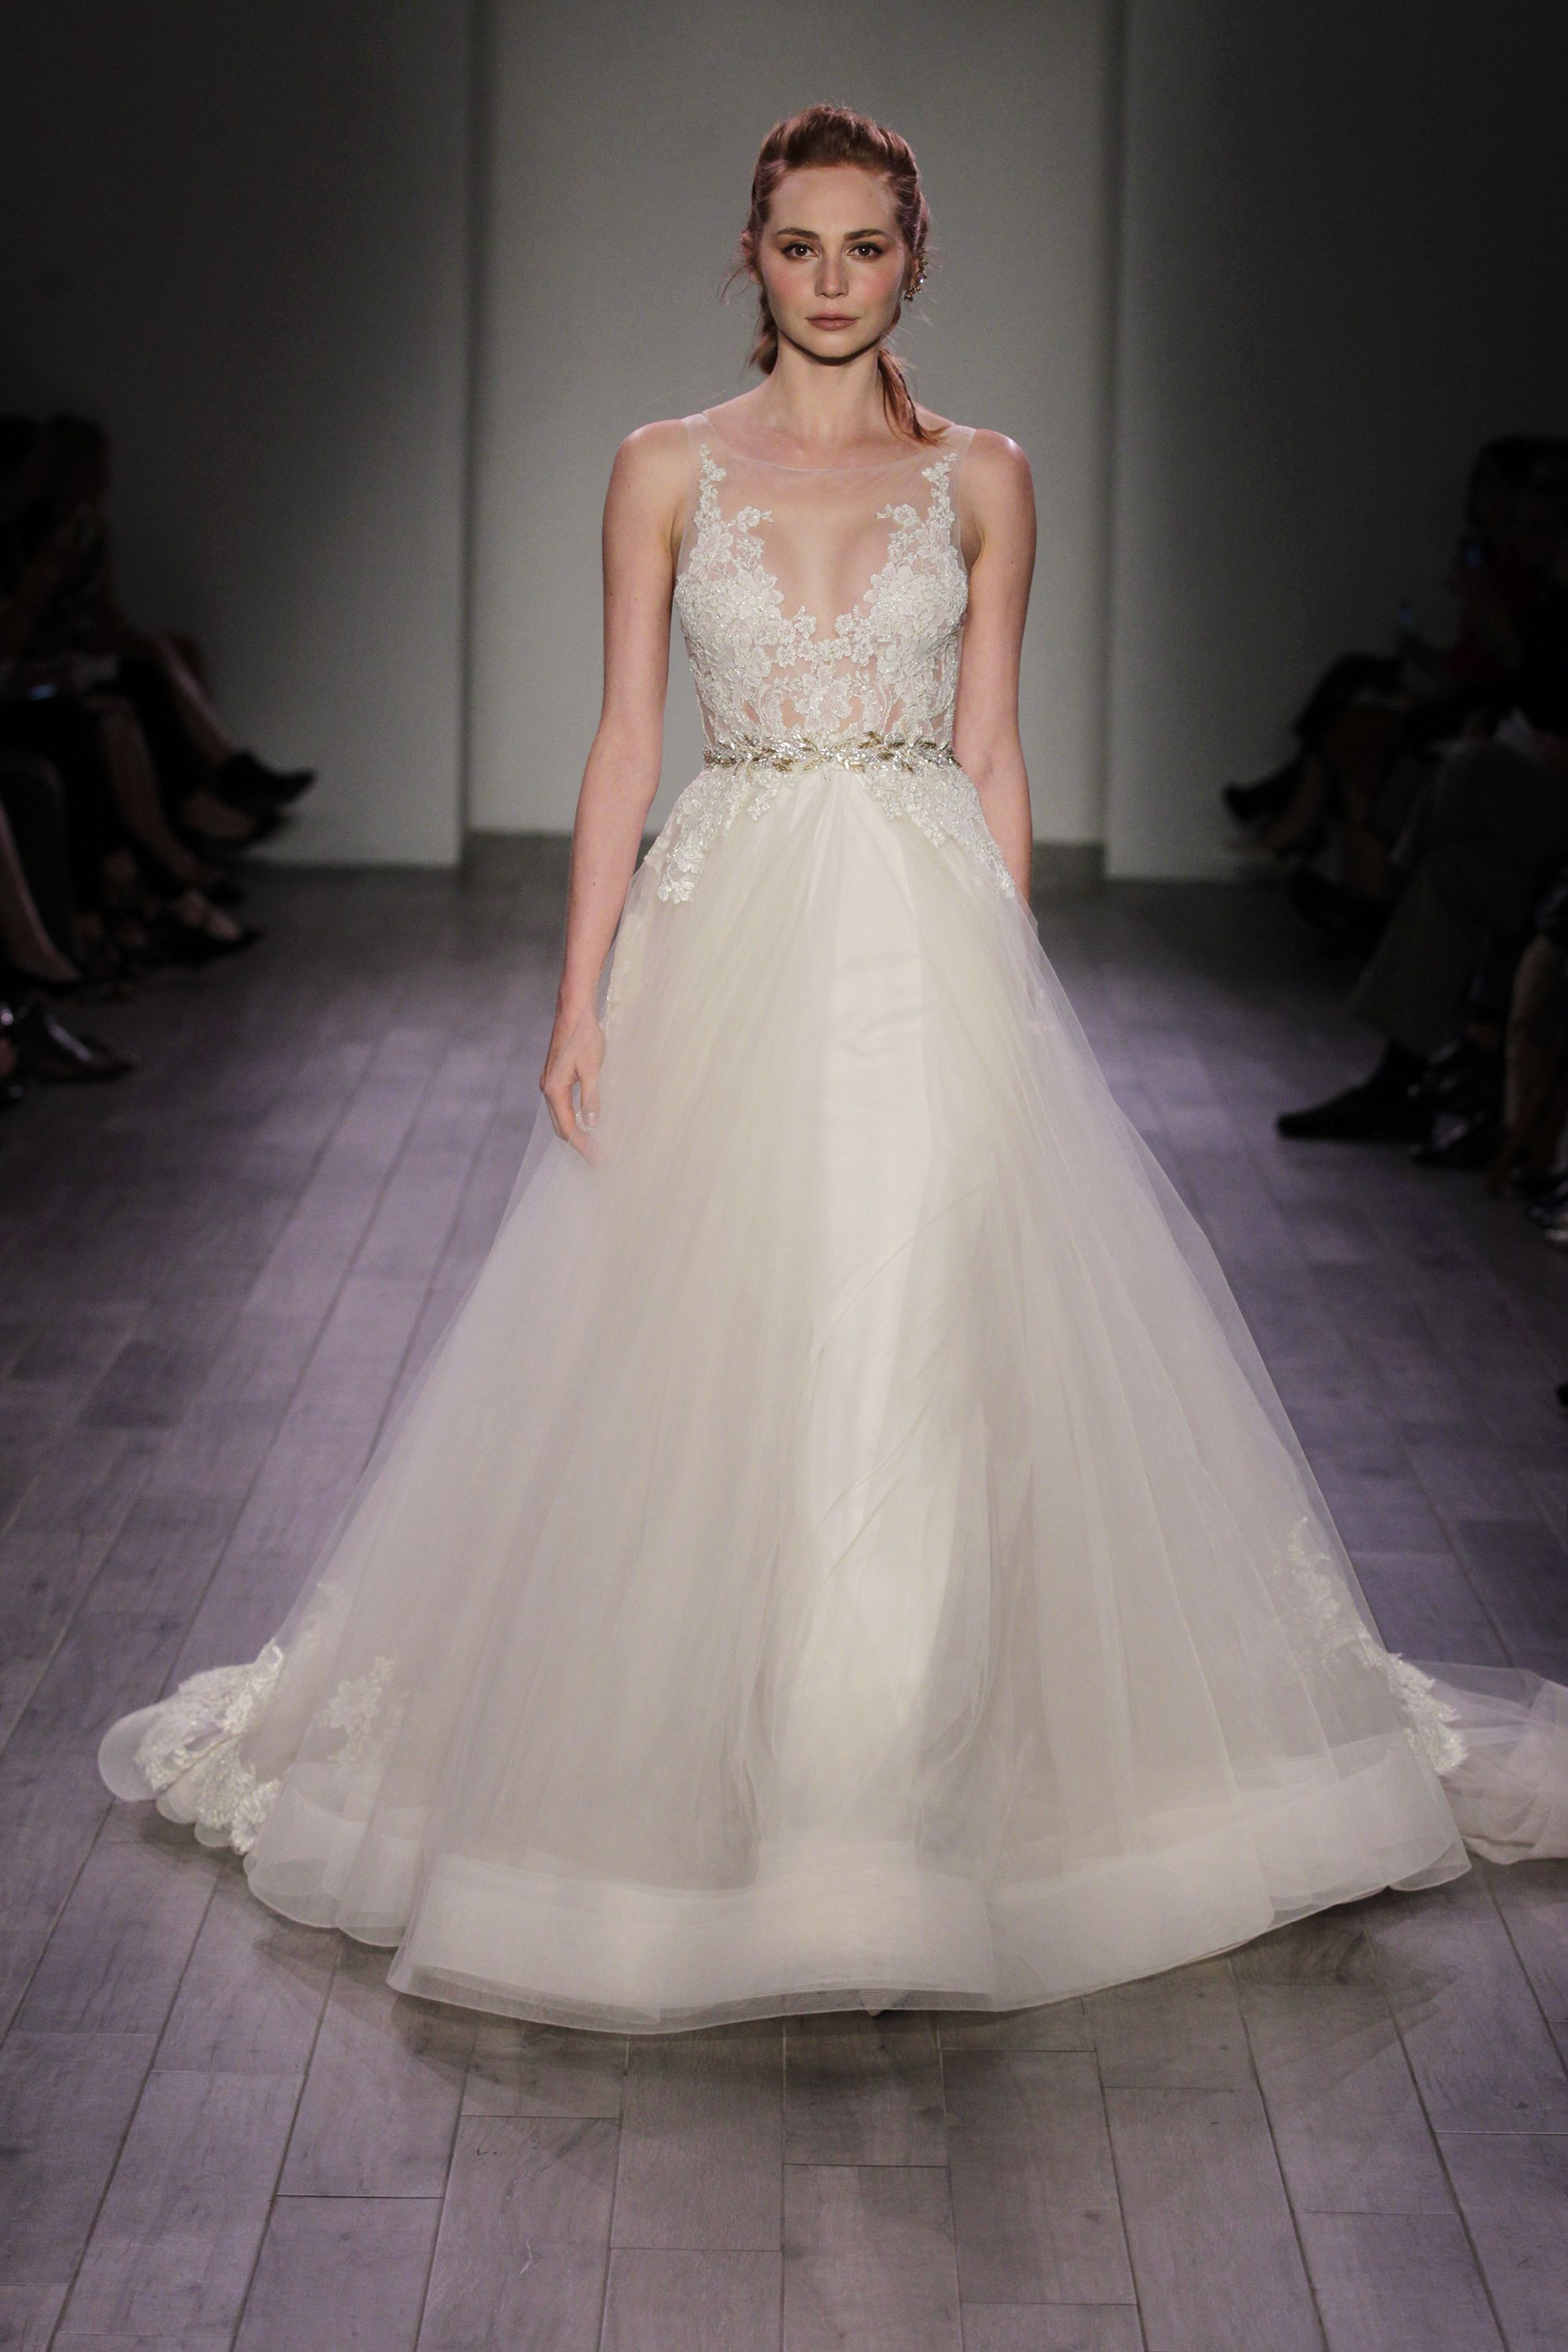 Best in bridal vera wang fall 2016 wedding gowns and wedding gowns champagne tulle bridal ball gown ivorygold alencon lace shear appliqued bodice metallic leaf trim at natural waist circular tulle skirt accented with ombrellifo Image collections